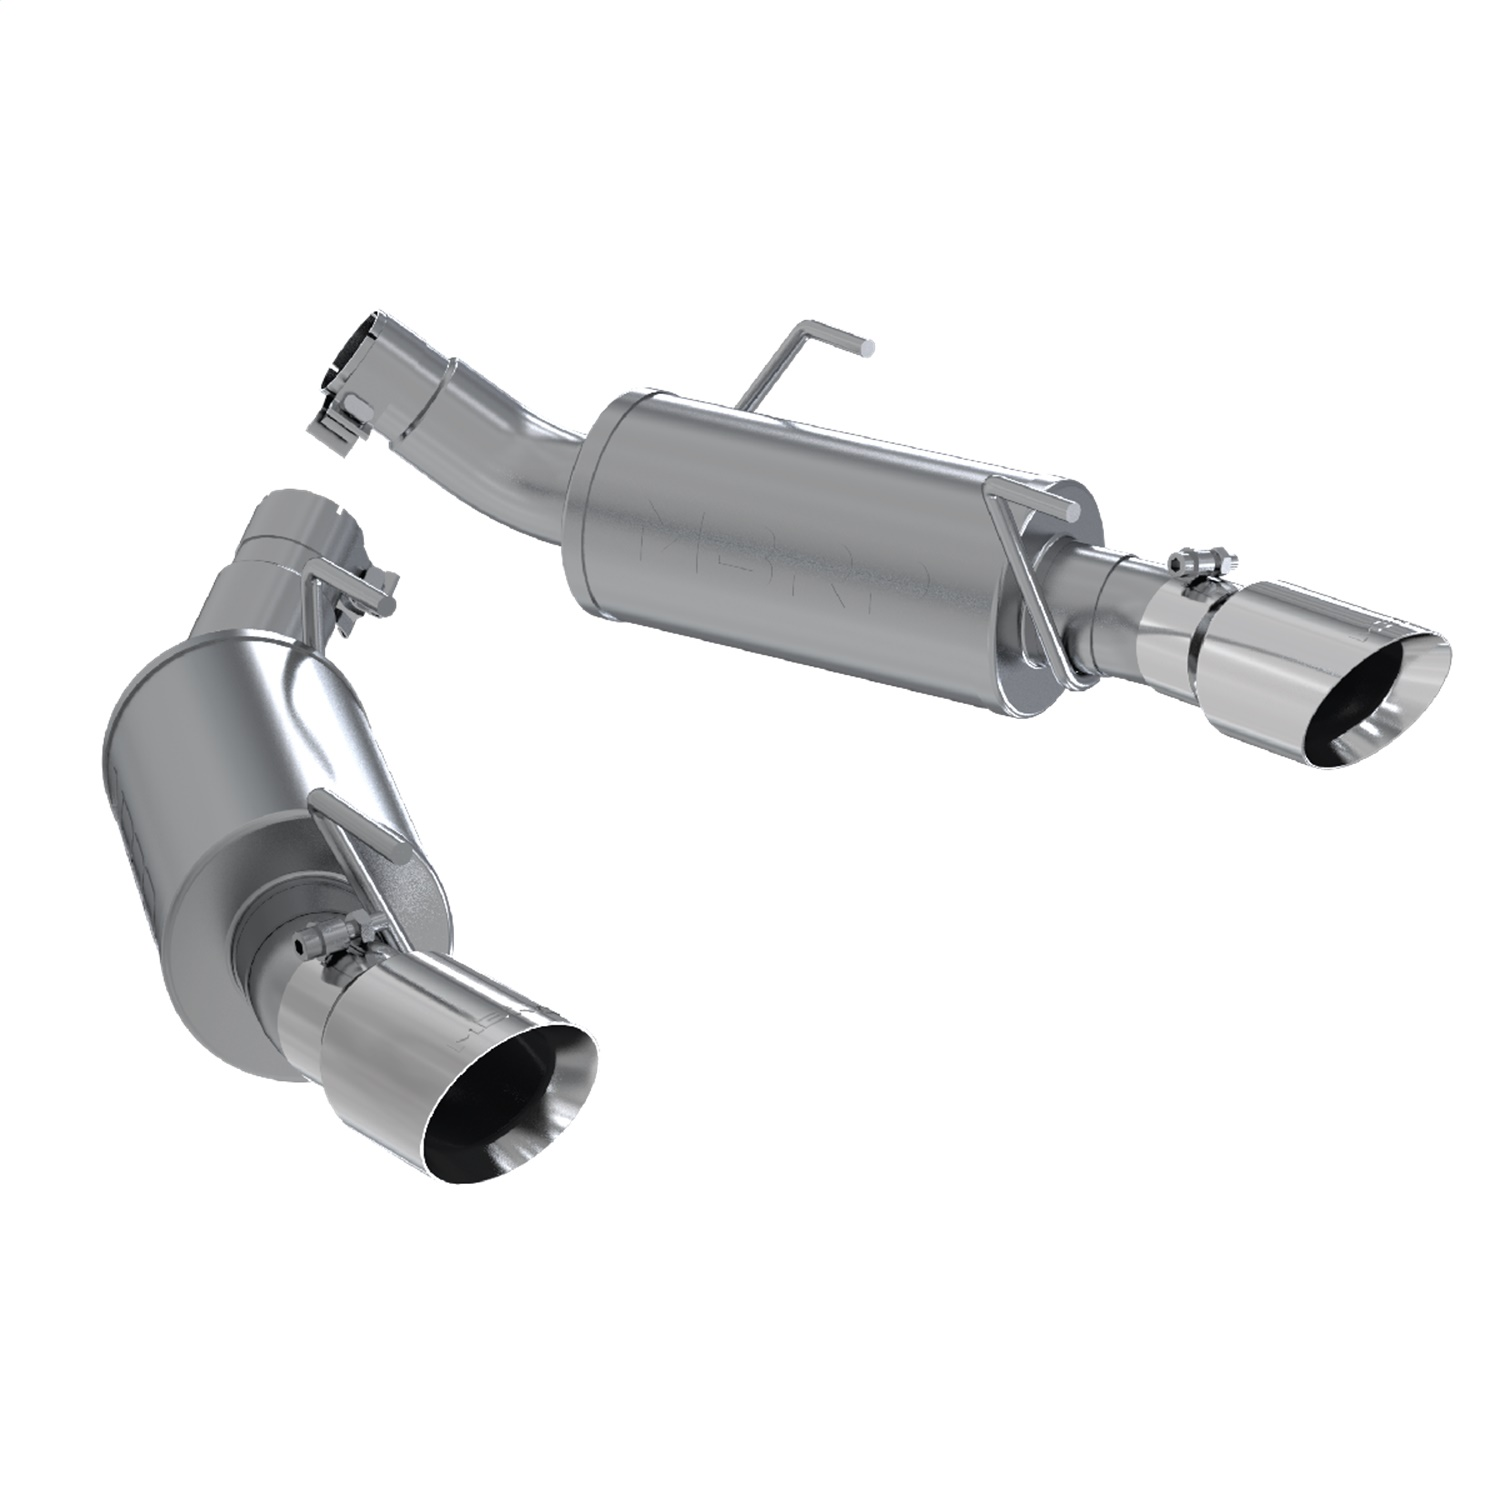 Mbrp Exhaust S Pro Series Axle Back Exhaust System Fits 05 10 Mustang